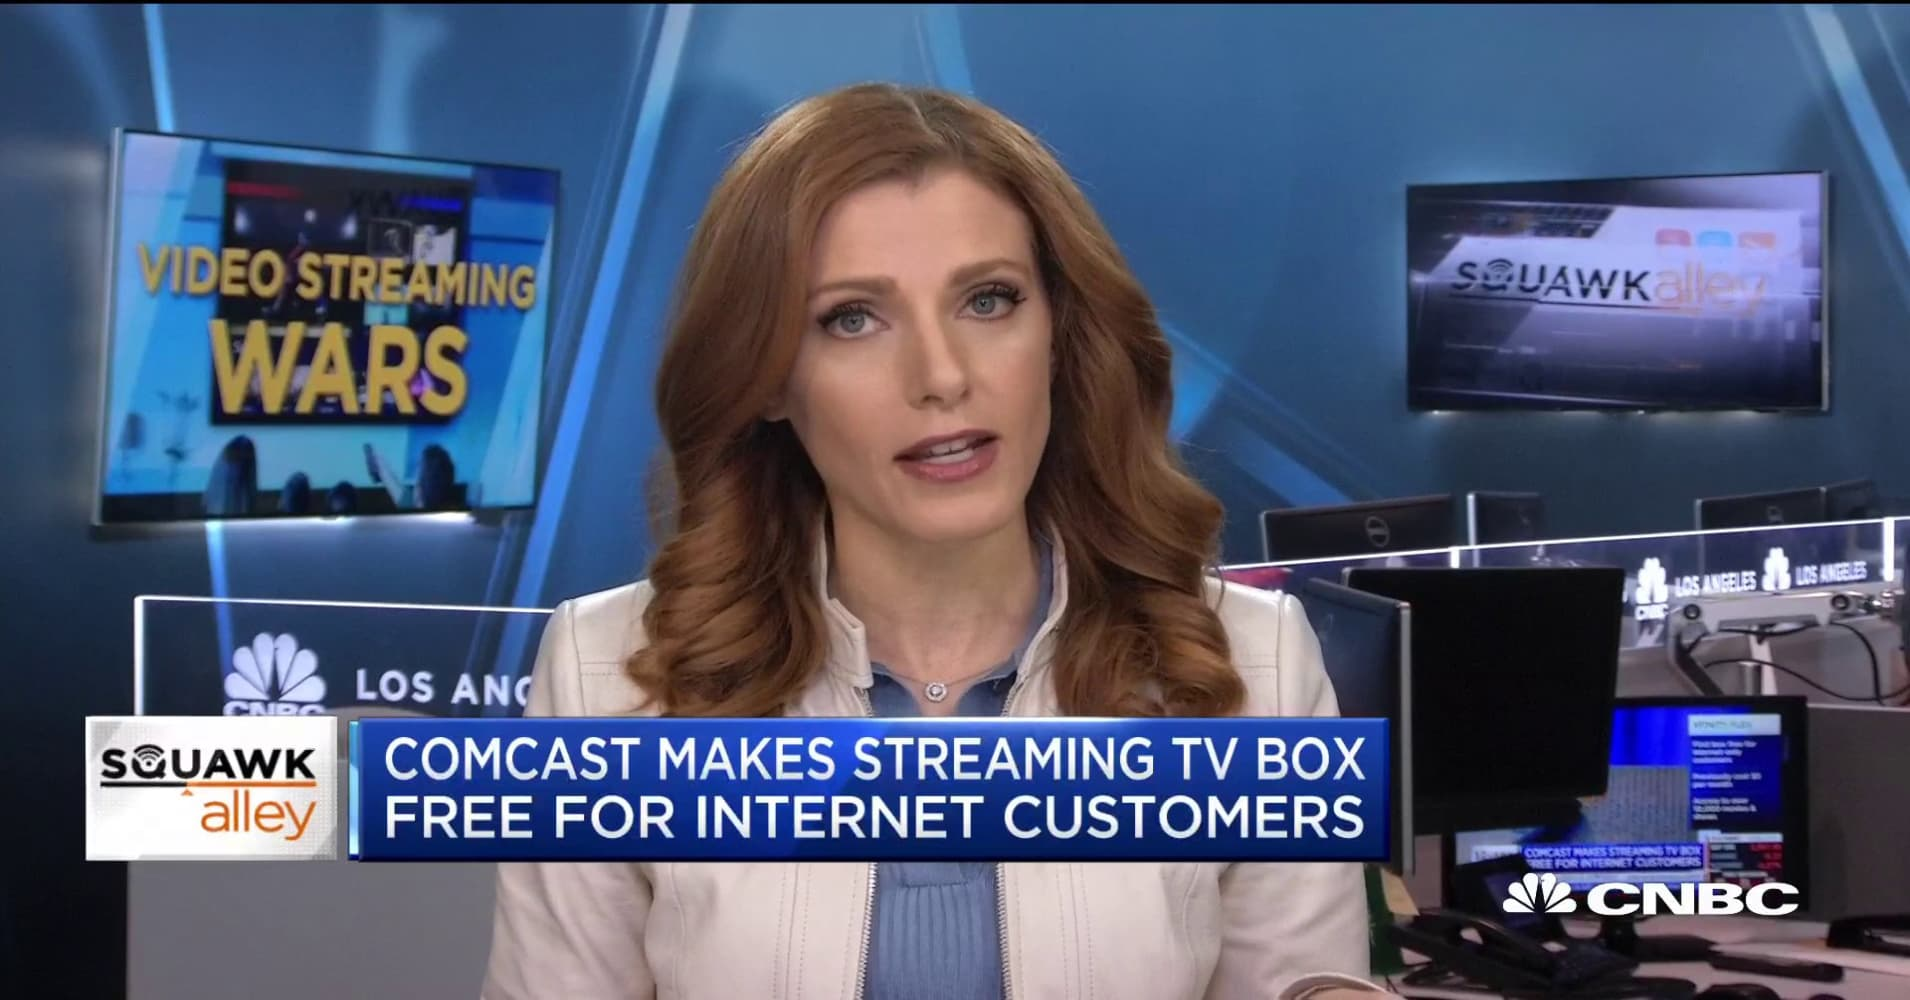 Comcast Makes Streaming Tv Box Free For Internet Customers